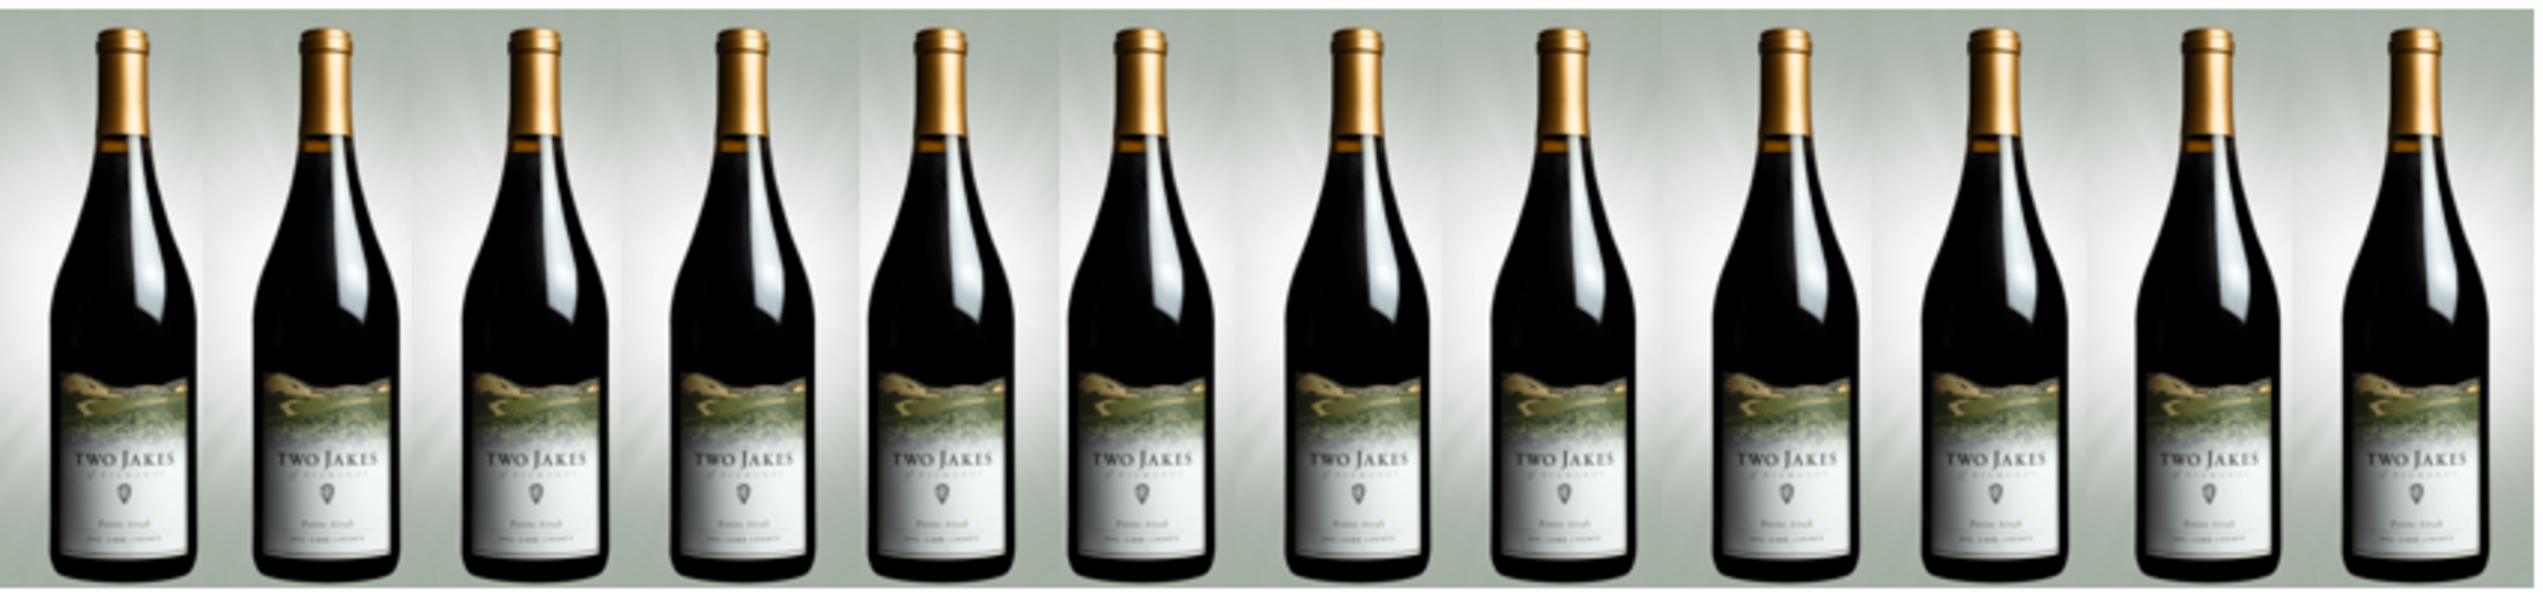 Two Jakes 2013 Petite Sirah Casemates 12 Pack Special